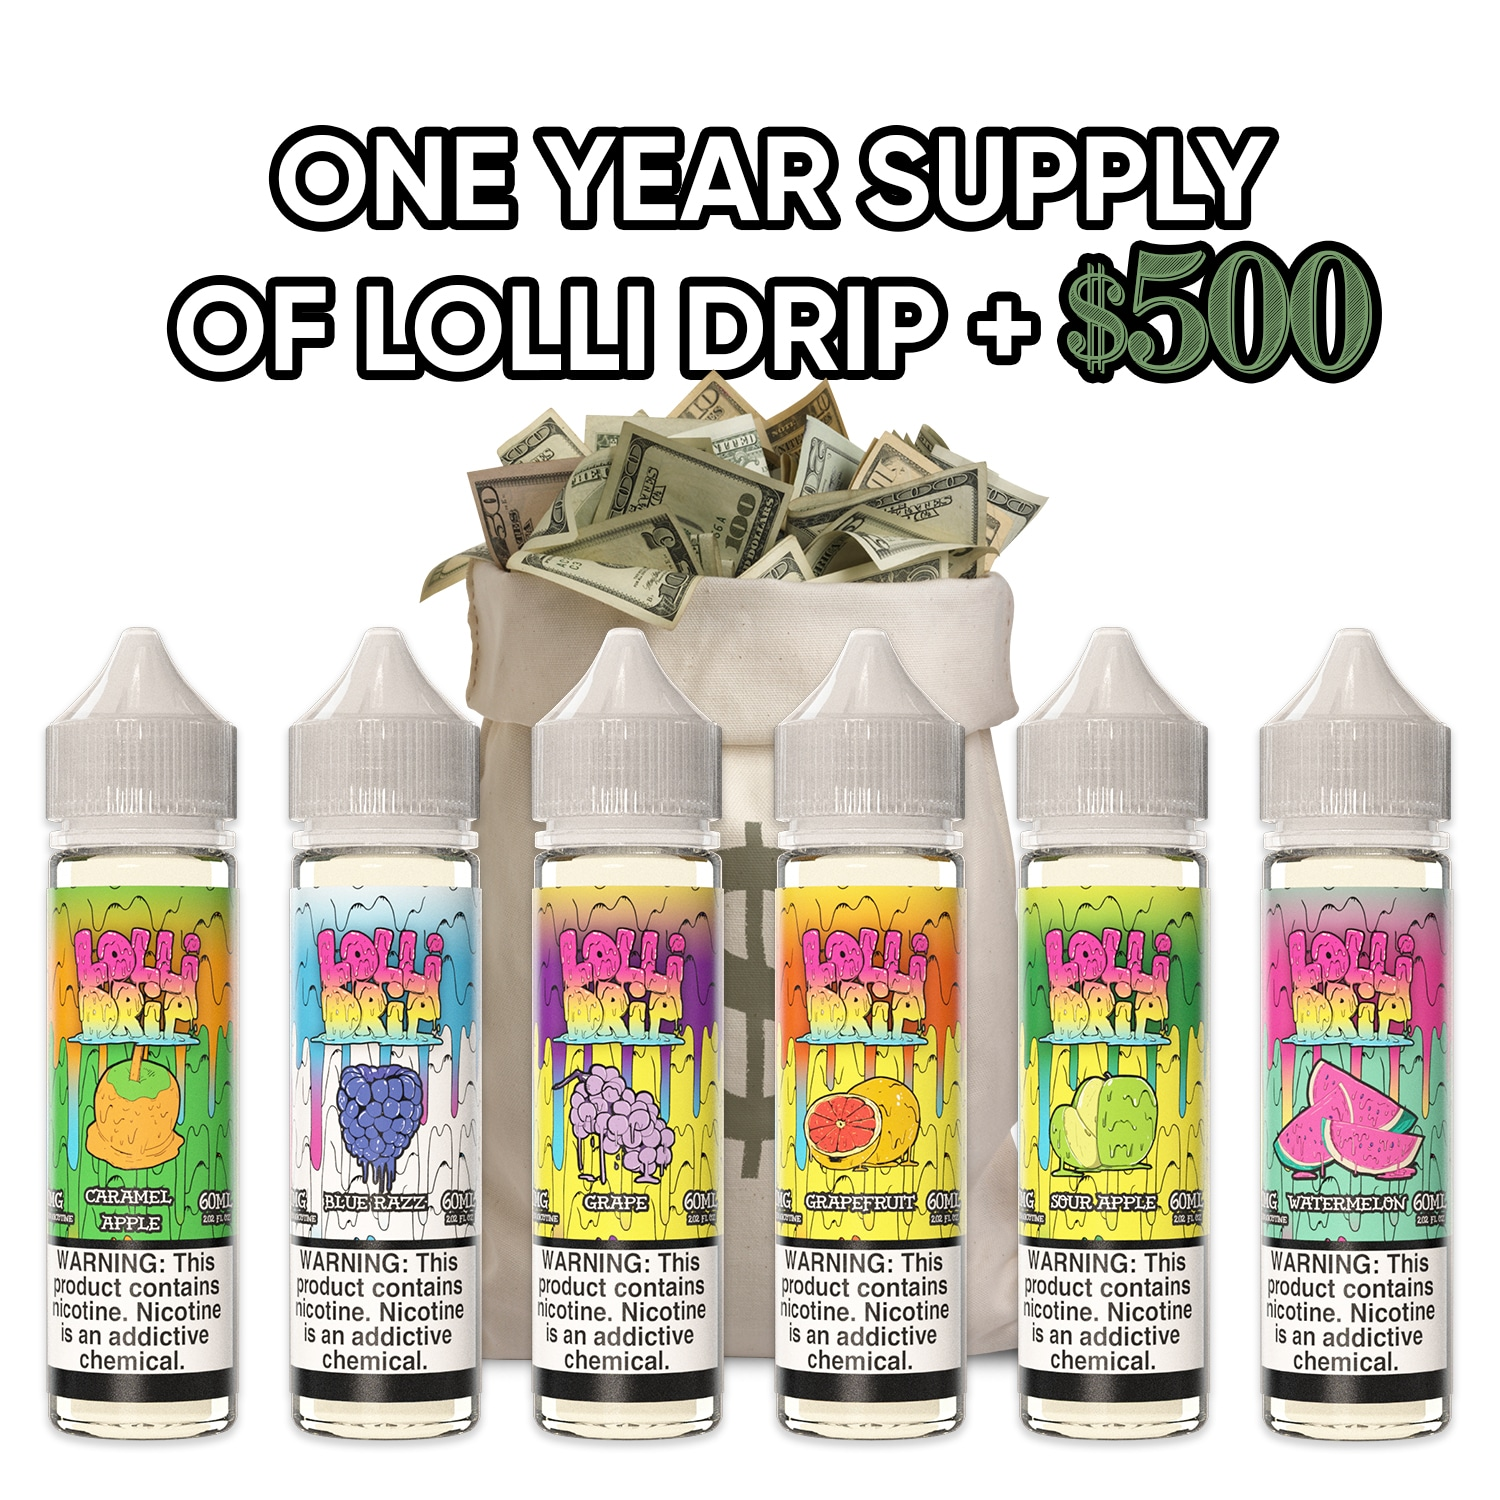 Grand Prize | One Year Supply of Lolli Drip E-liquid + $500